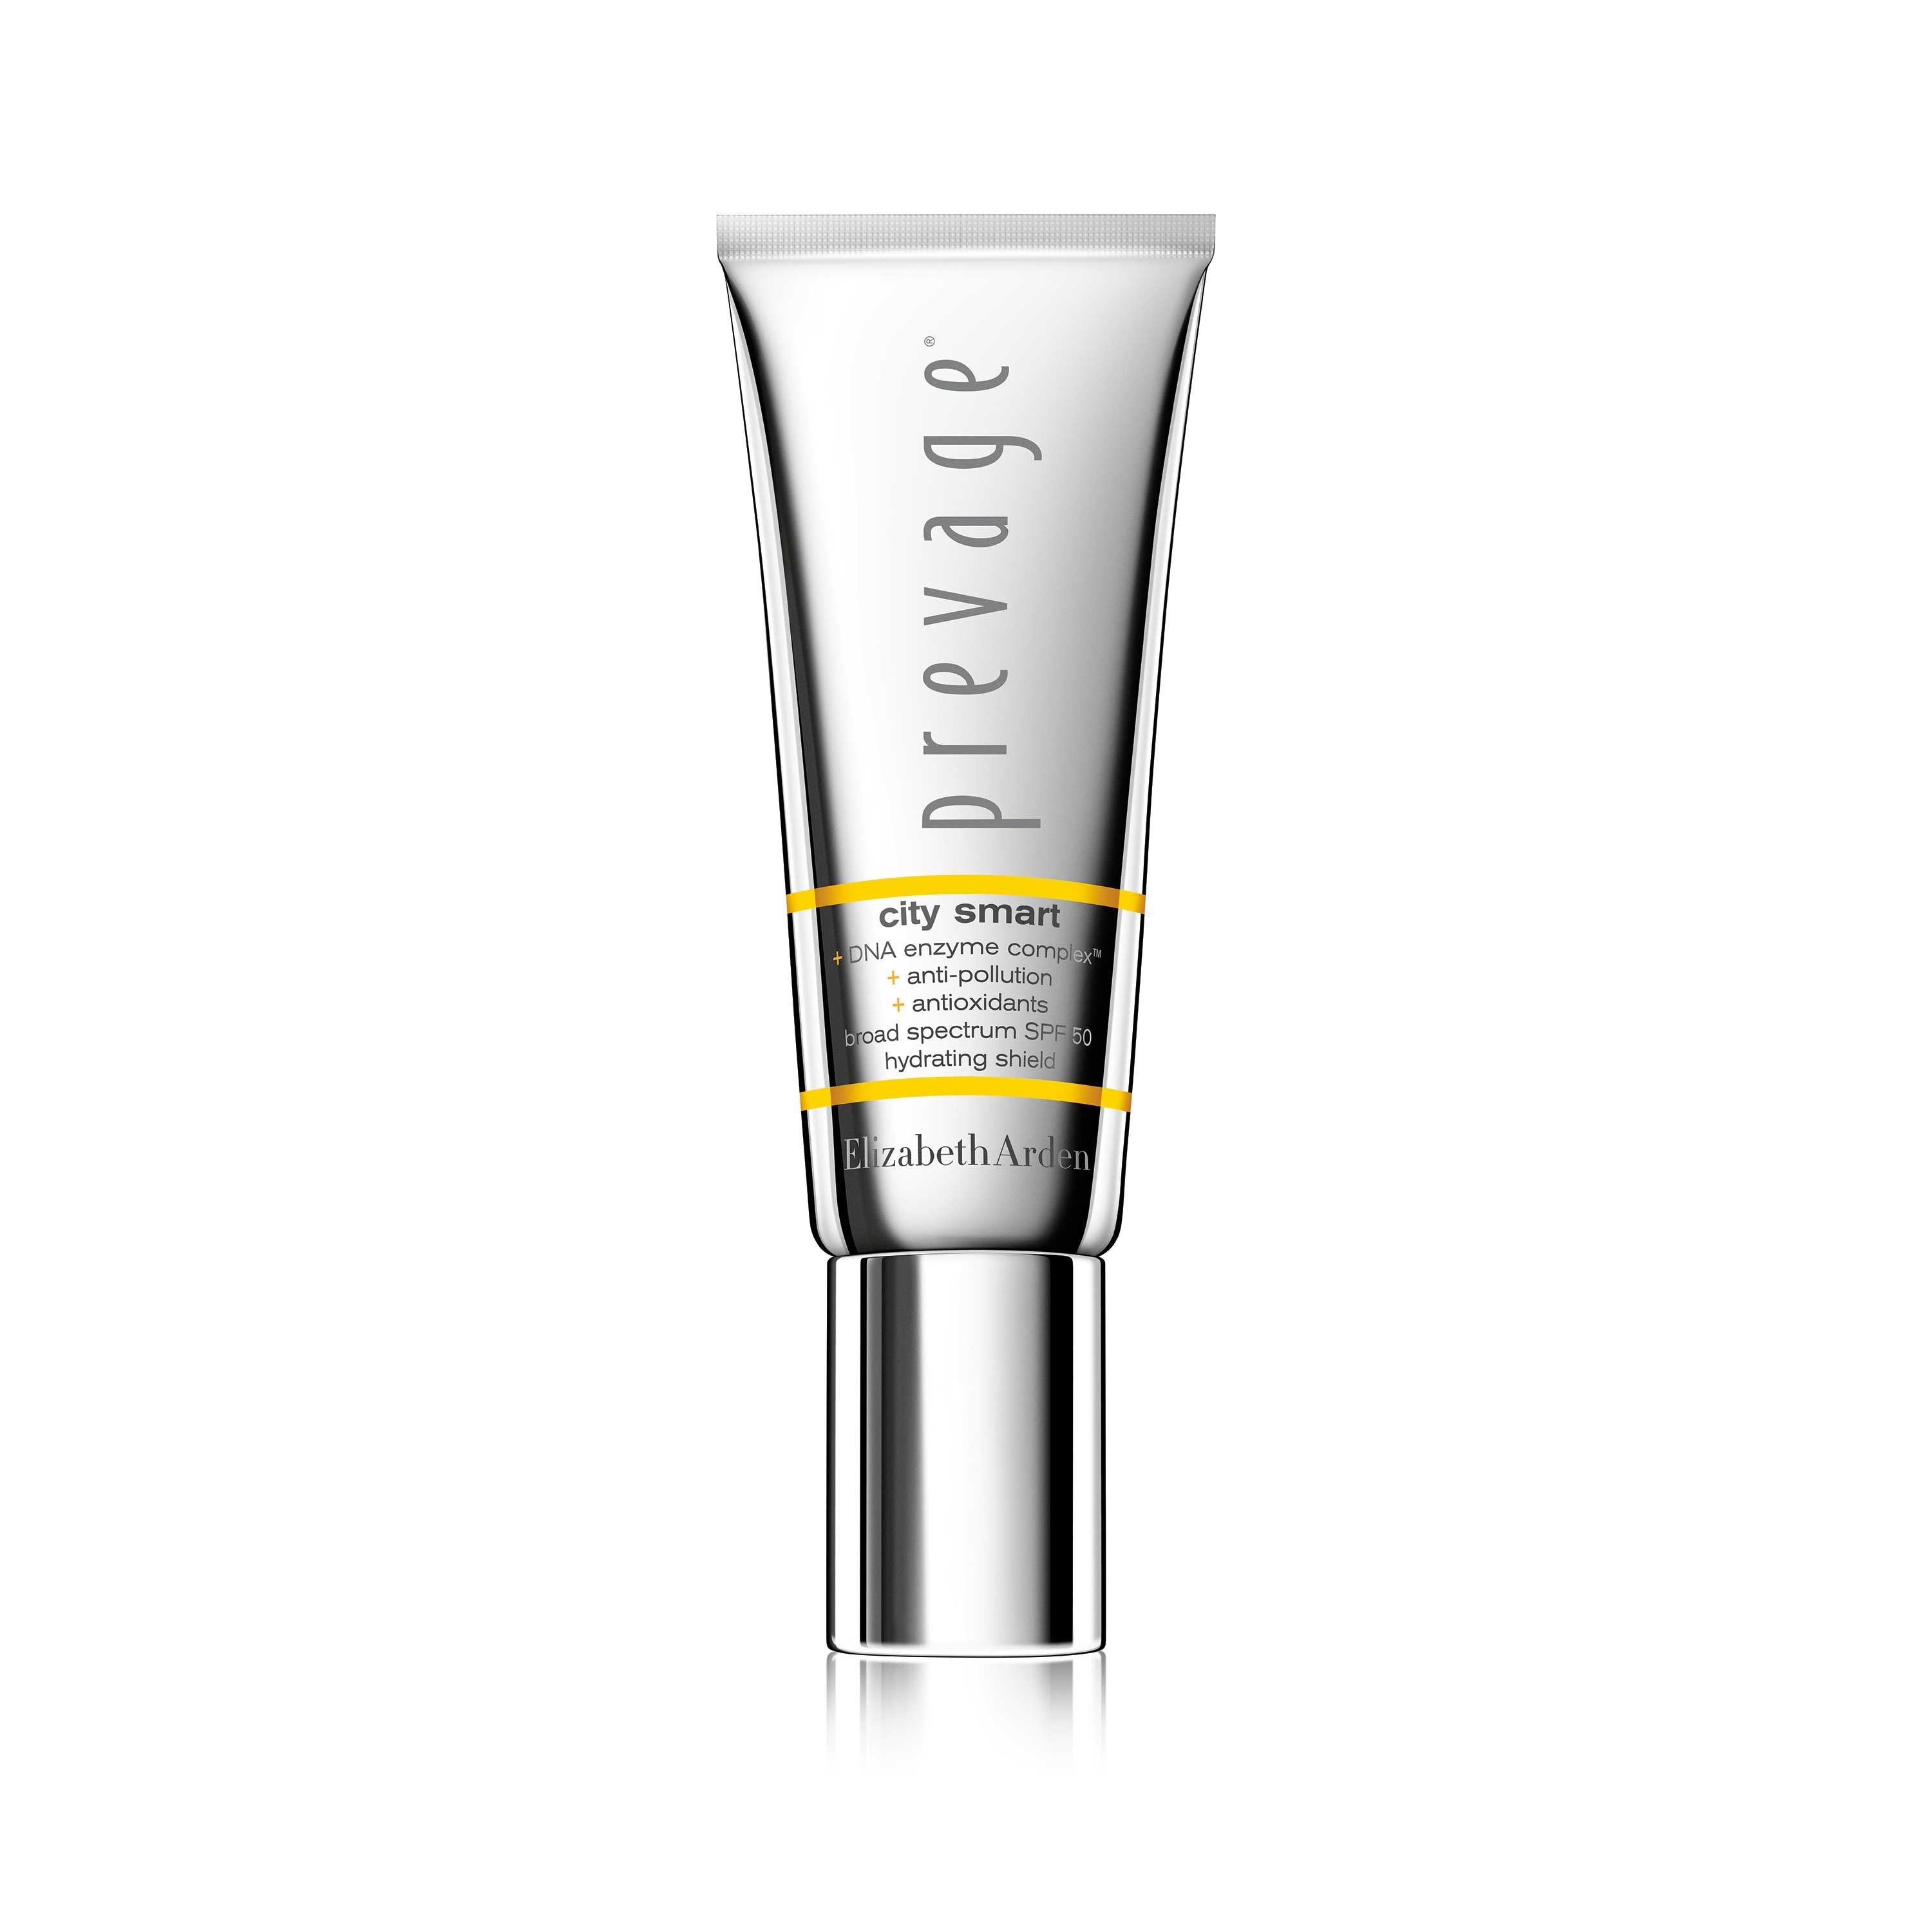 "<p><strong data-redactor-tag=""strong"" data-verified=""redactor"">Elizabeth Arden Prevage City Smart Broad Spectrum SPF 50 Hydrating Shield</strong><span class=""redactor-invisible-space"" data-verified=""redactor"" data-redactor-tag=""span"" data-redactor-class=""redactor-invisible-space""><strong data-redactor-tag=""strong"" data-verified=""redactor""></strong></span><br></p><p>I feel a little bit like Stefon, Bill Hader's club promoter character from&nbsp&#x3B;<i data-redactor-tag=""i"">Saturday Night Live</i>'s Weekend Update, when talking about this product because…it has everything. Antioxidants, including a trio of tried-and-true ones beloved by dermatologists: green tea, idebenone, and ferulic acid. A mineral SPF of 50. A slippery texture that acts as a makeup primer. A slight tint to even out discoloration. An airless pump to keep the formula finger—and thus dirt—free. And a finish that leaves skin glossy and dewy (though, admittedly, this does not last for longer than an hour or so). It's not quite thick enough to double as a moisturizer, but it has eliminated the need for foundation on weekend days, when I tend to wear less makeup. It's not New York's hottest club, but it's at the edge of my shelf.&nbsp&#x3B;</p><p>$68,&nbsp&#x3B;<a href=""http://www.elizabetharden.com/prevage-city-smart-hydrating-shield-1001A0100498.html?cgid=city-smart"" target=""_blank"" data-tracking-id=""recirc-text-link"">elizabetharden.com</a> </p>"